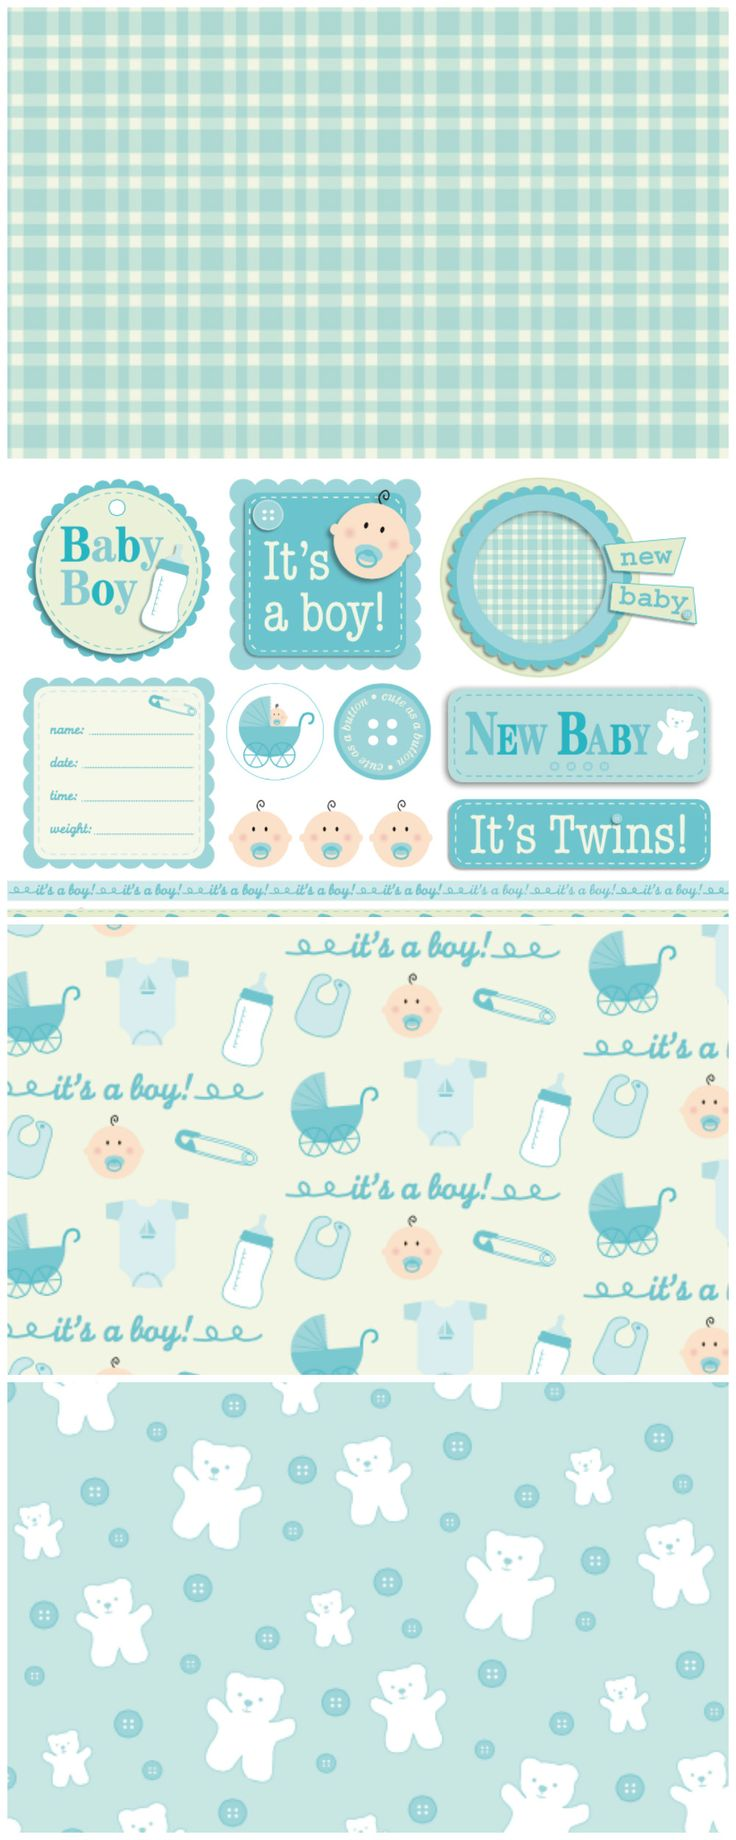 Make a card for a baby boy with these sweet free papers – download them from the Papercraft Inspirations website.